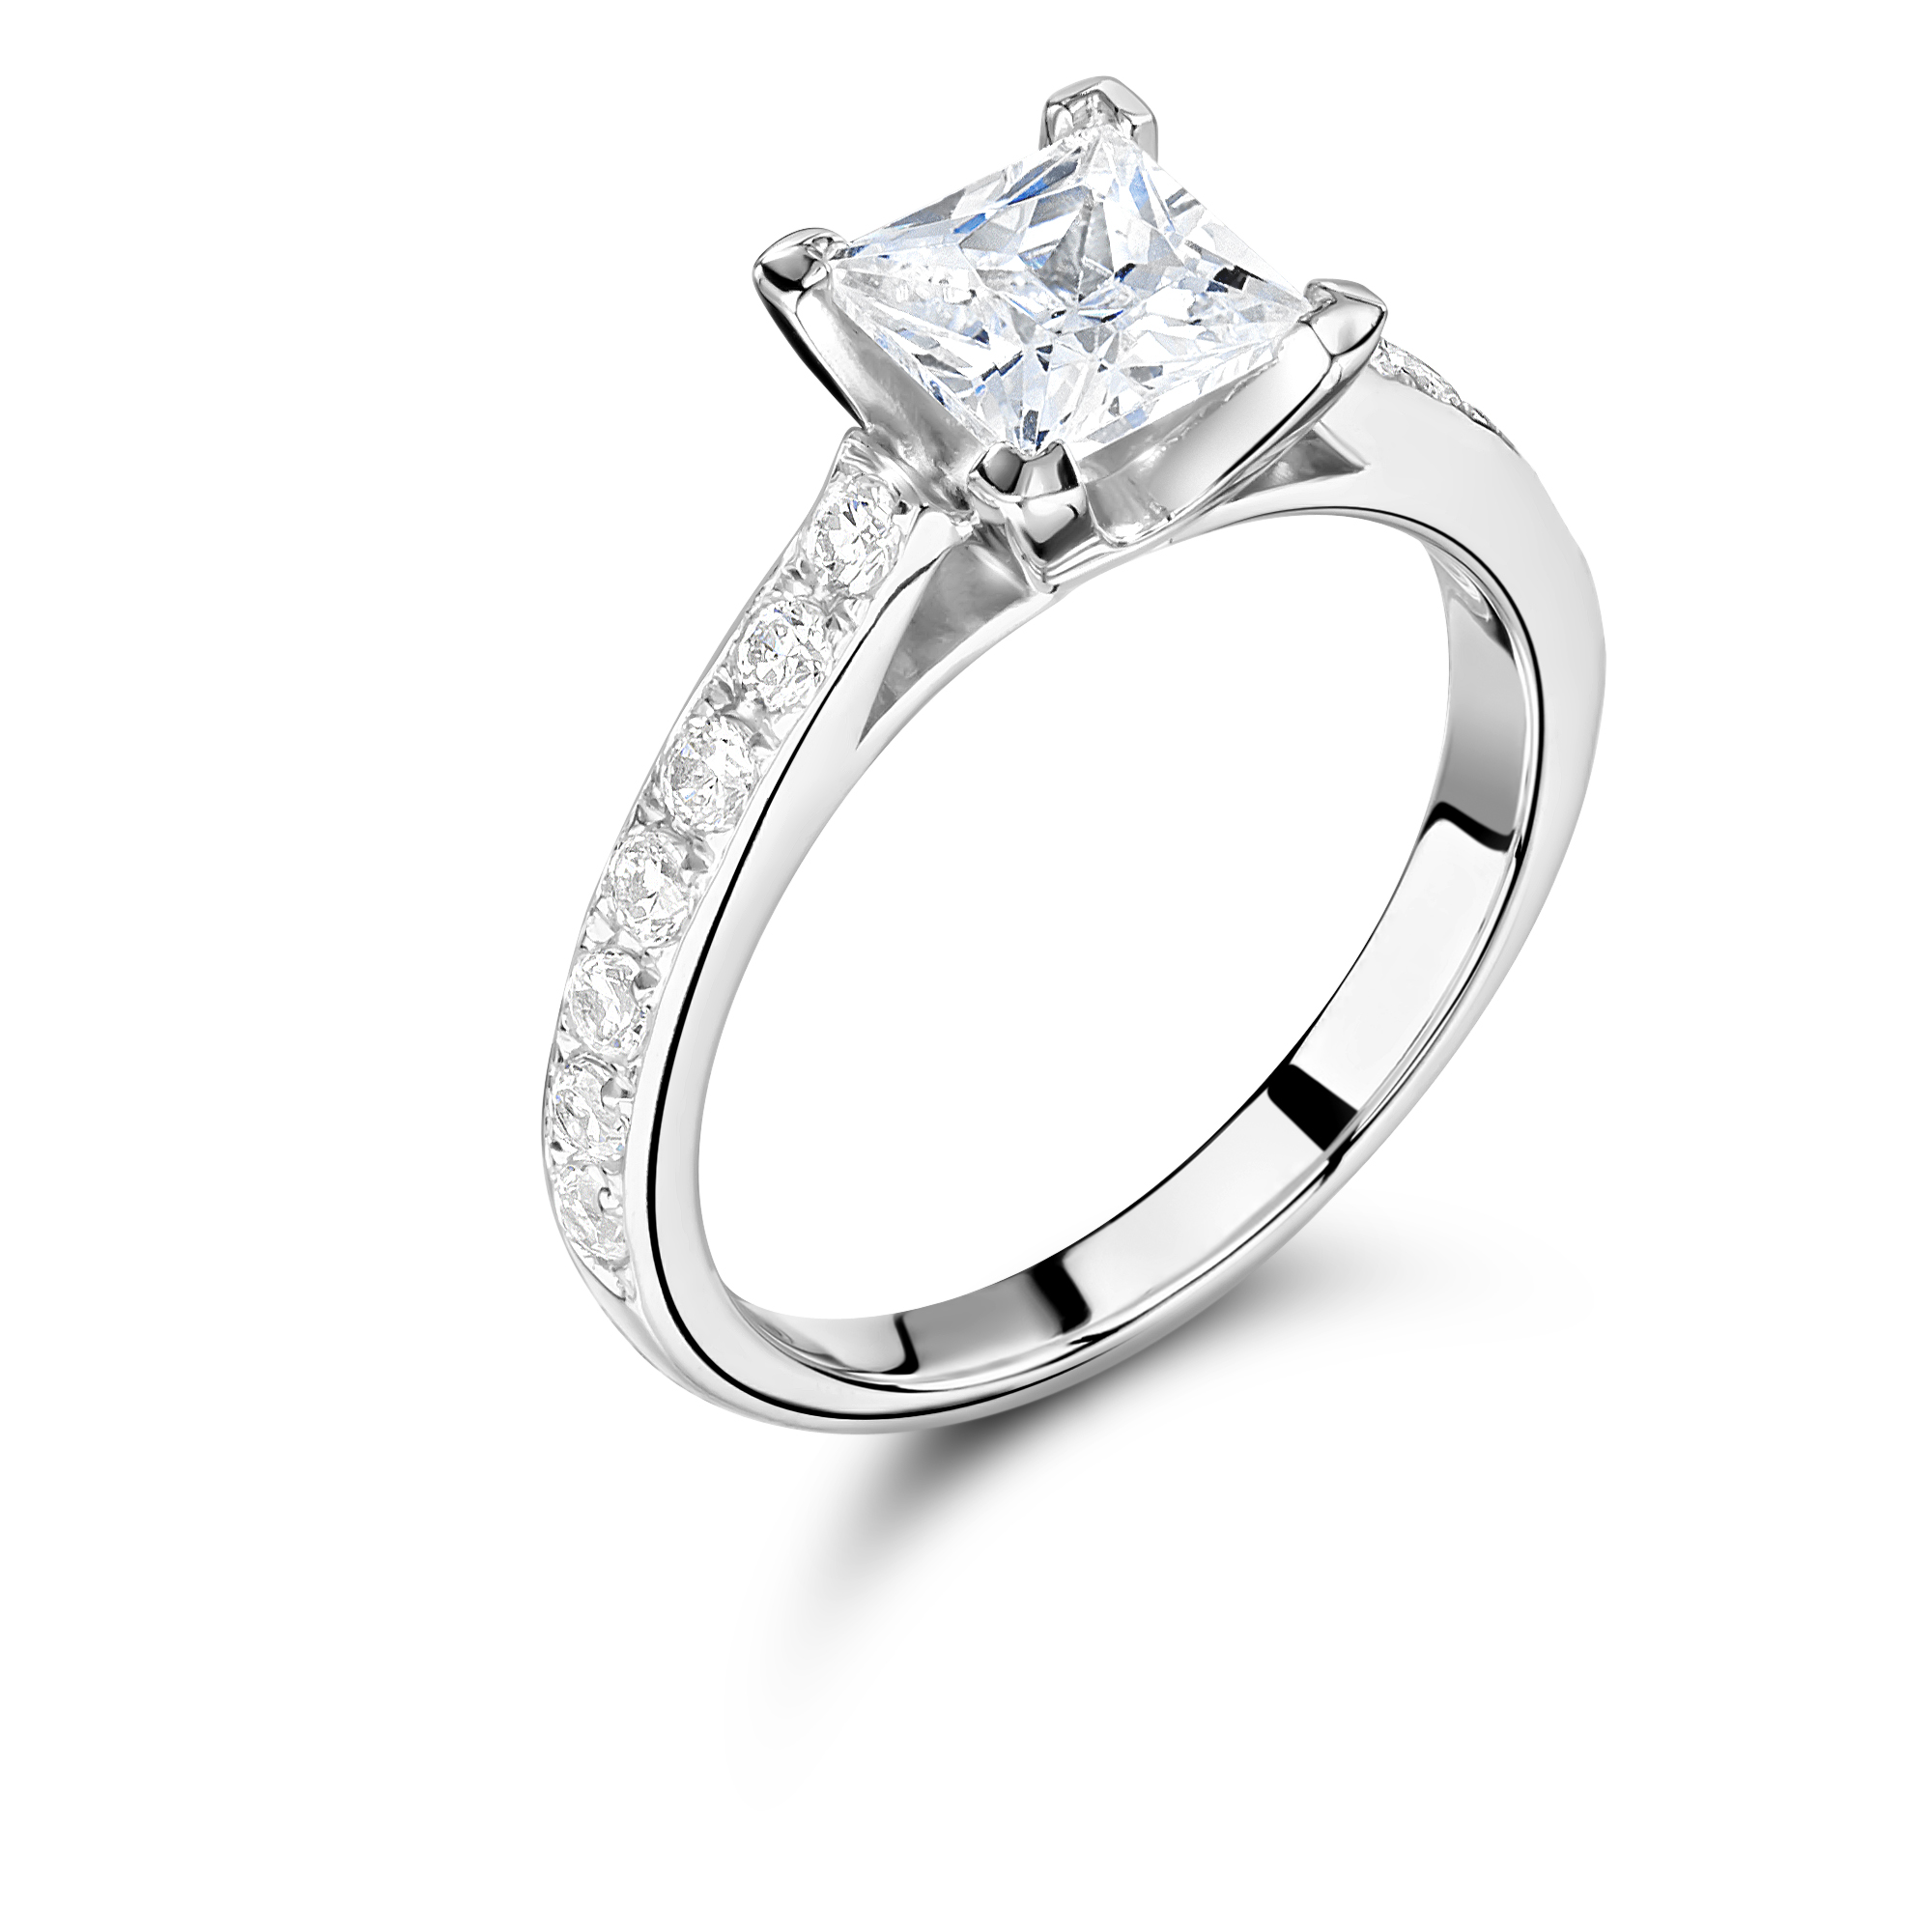 engagement cuts jewelry diamond tacori cushion about not news you rounded inside may know dazzling rings cut from